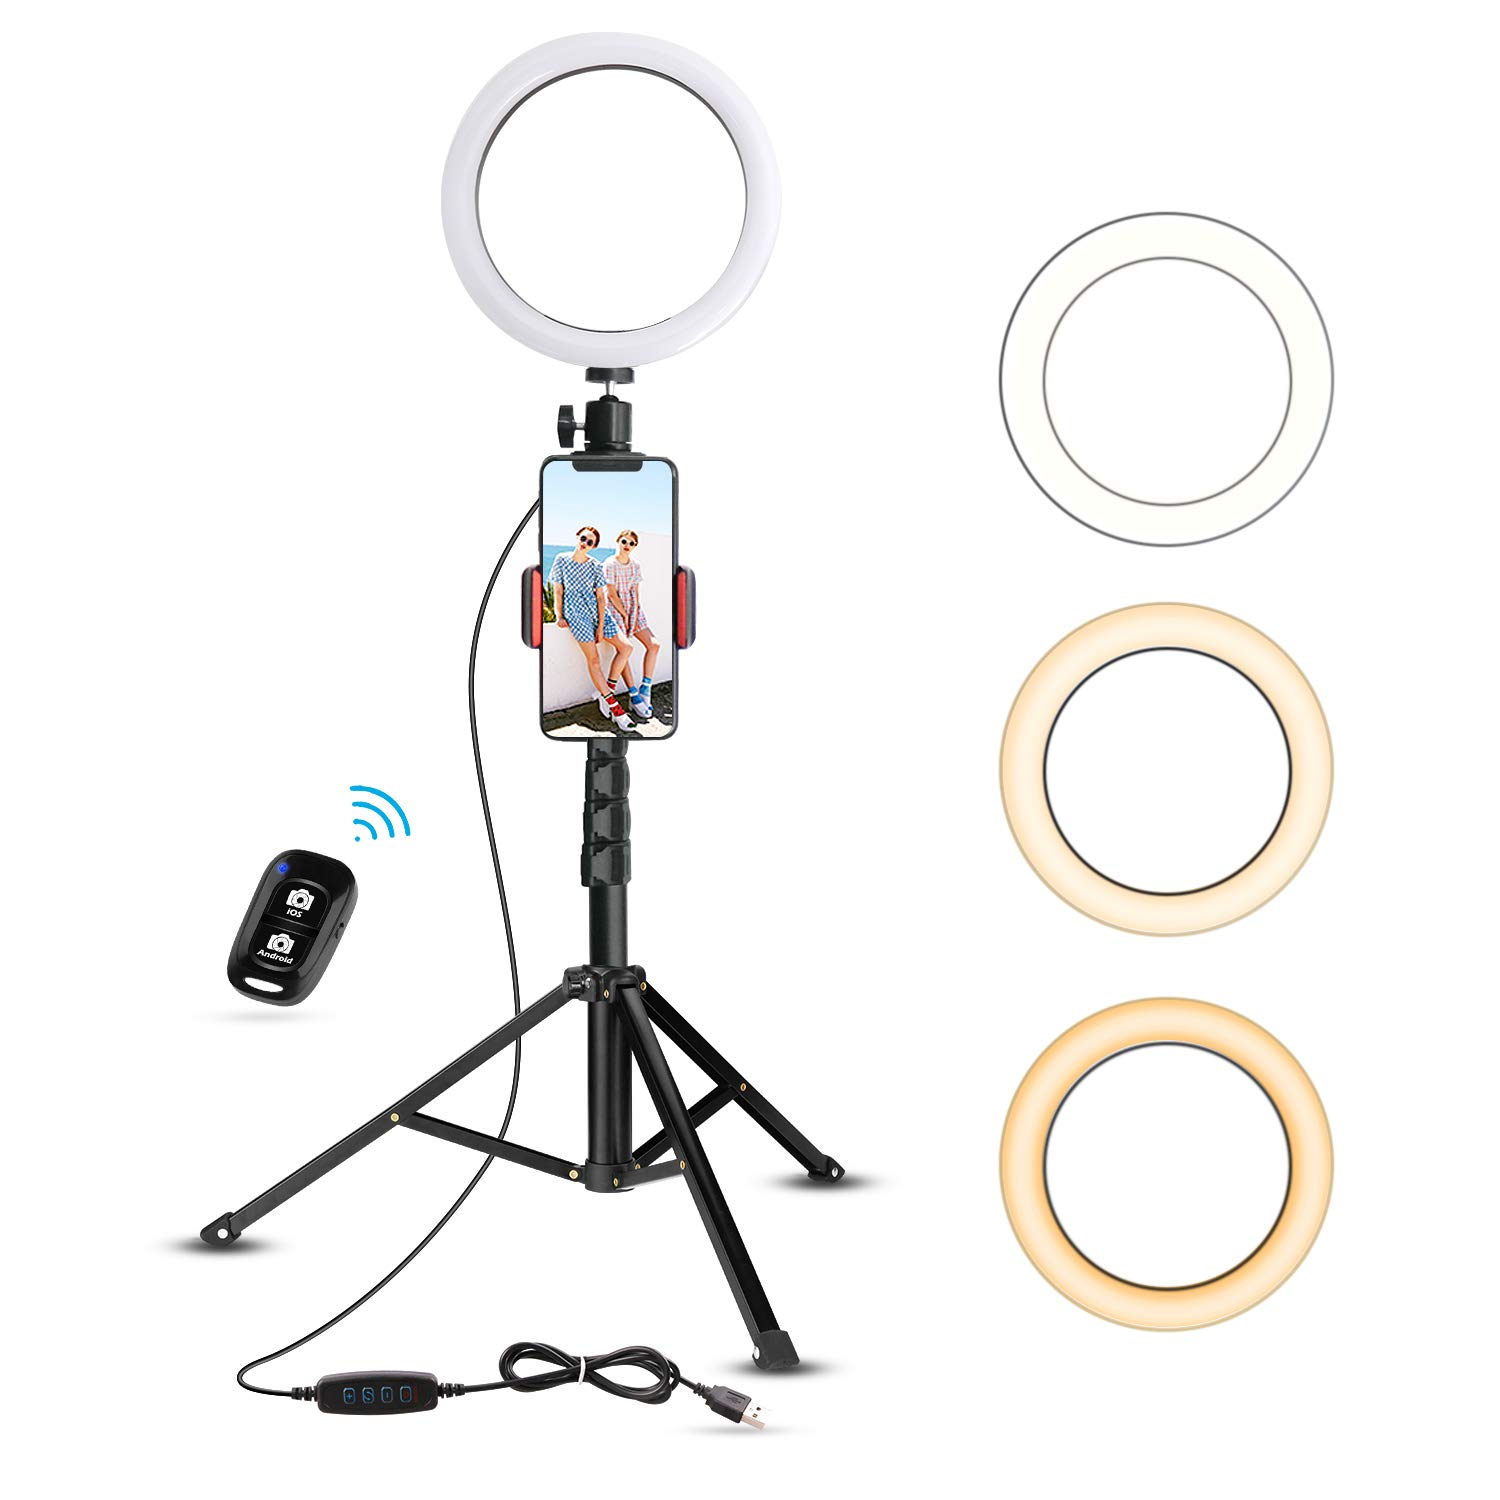 8'' Selfie Ring Light with Tripod Stand & Cell Phone Holder for Live Stream/Makeup, UBeesize Mini Led Camera Ringlight for YouTube Video/Photography Compatible with iPhone Xs Max XR Android (Upgraded) by UBeesize (Image #1)